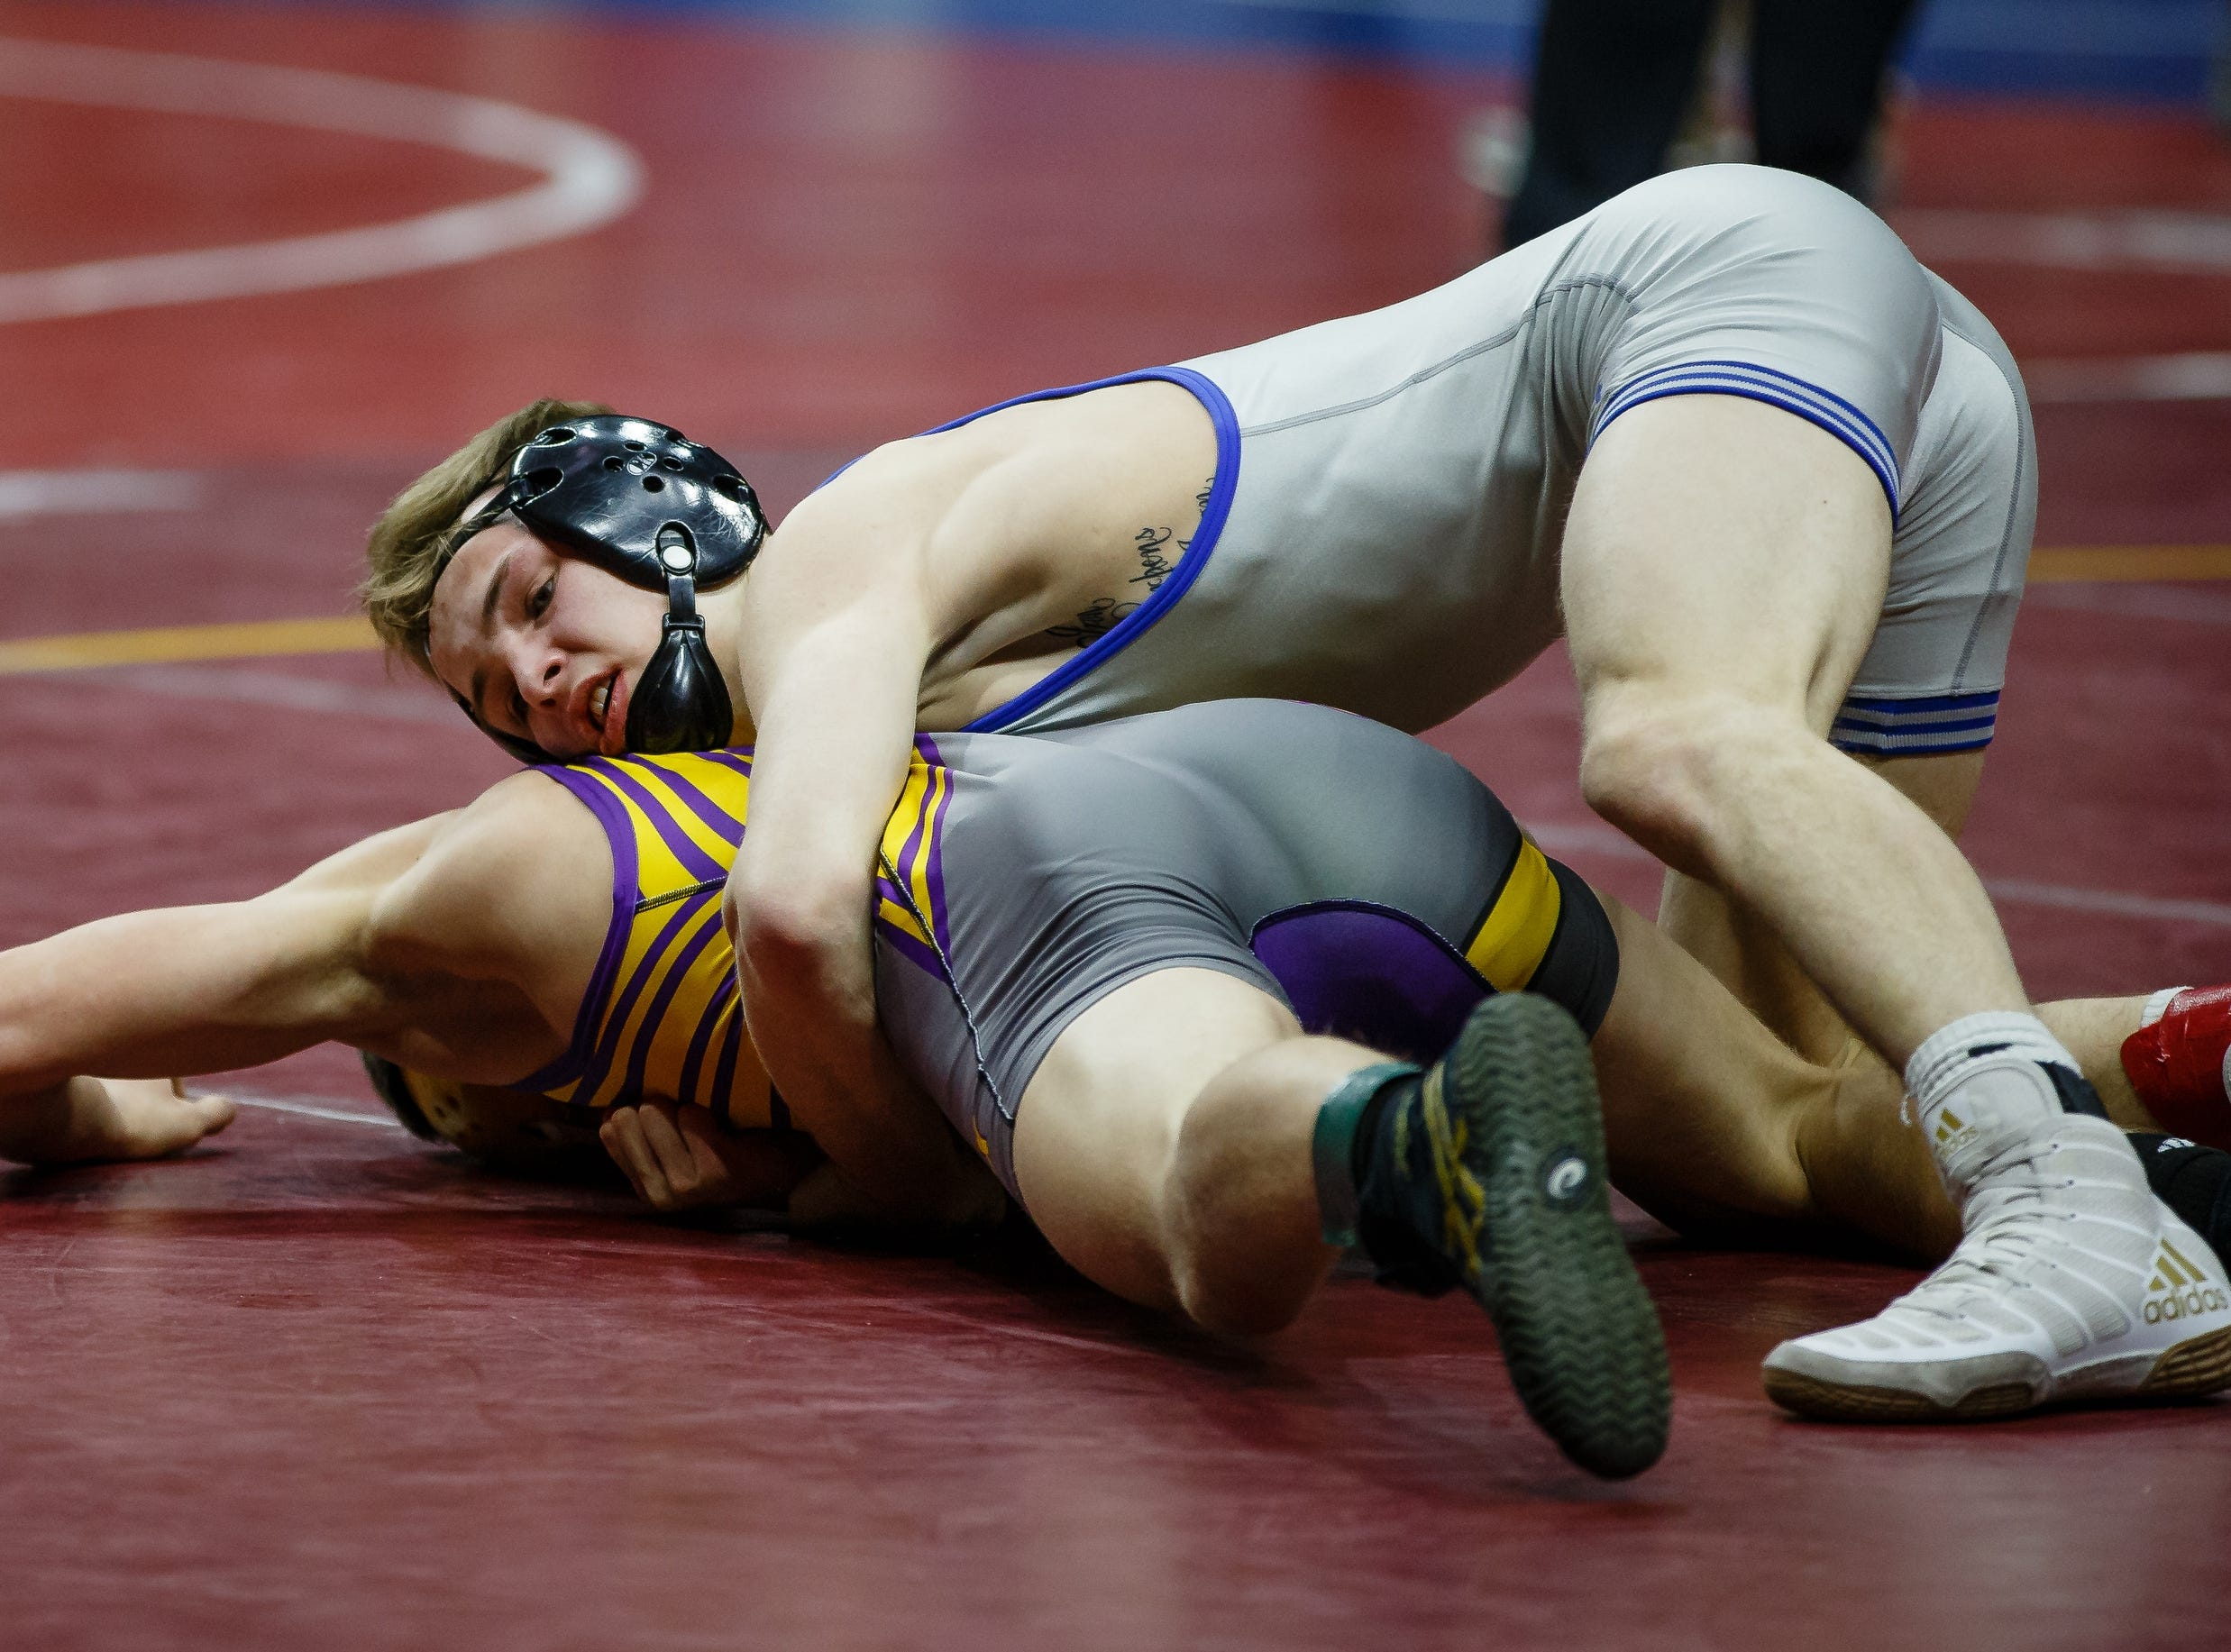 Kaden Anderlik of Crestwood, Cresco wrestles Drake Doolittle of Webster City during their class 2A 120 pound state championship semi-final match on Friday, Feb. 15, 2019 in Des Moines. Doolittle moves onto the finals with an 8-3 decision.